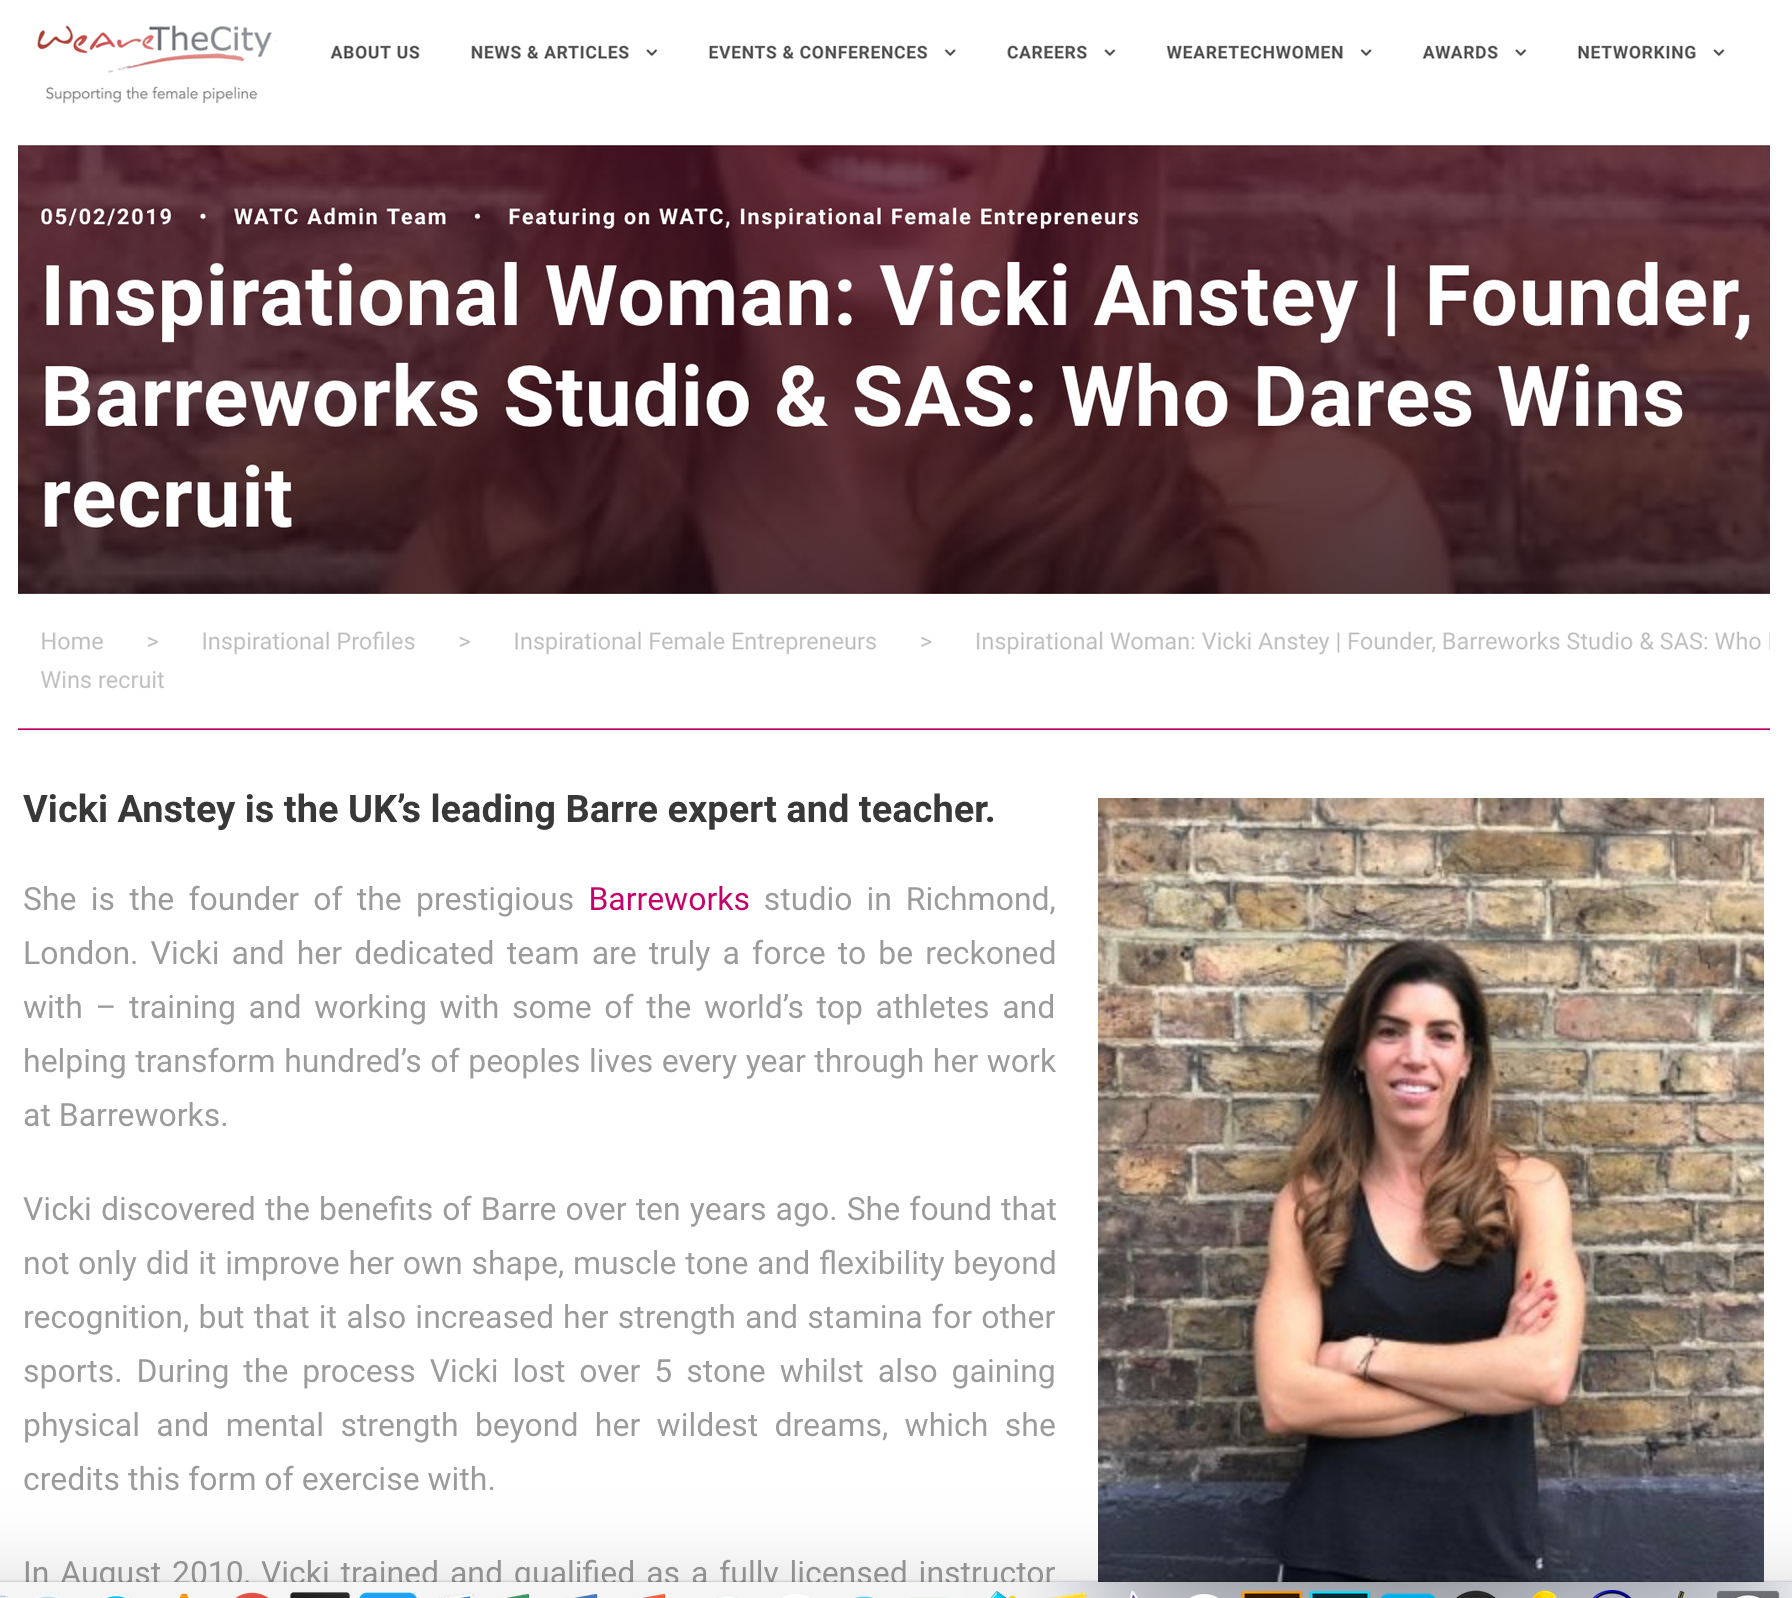 Inspirational Woman: Vicki Anstey | Founder, Barreworks Studio & SAS: Who Dares Wins recruit